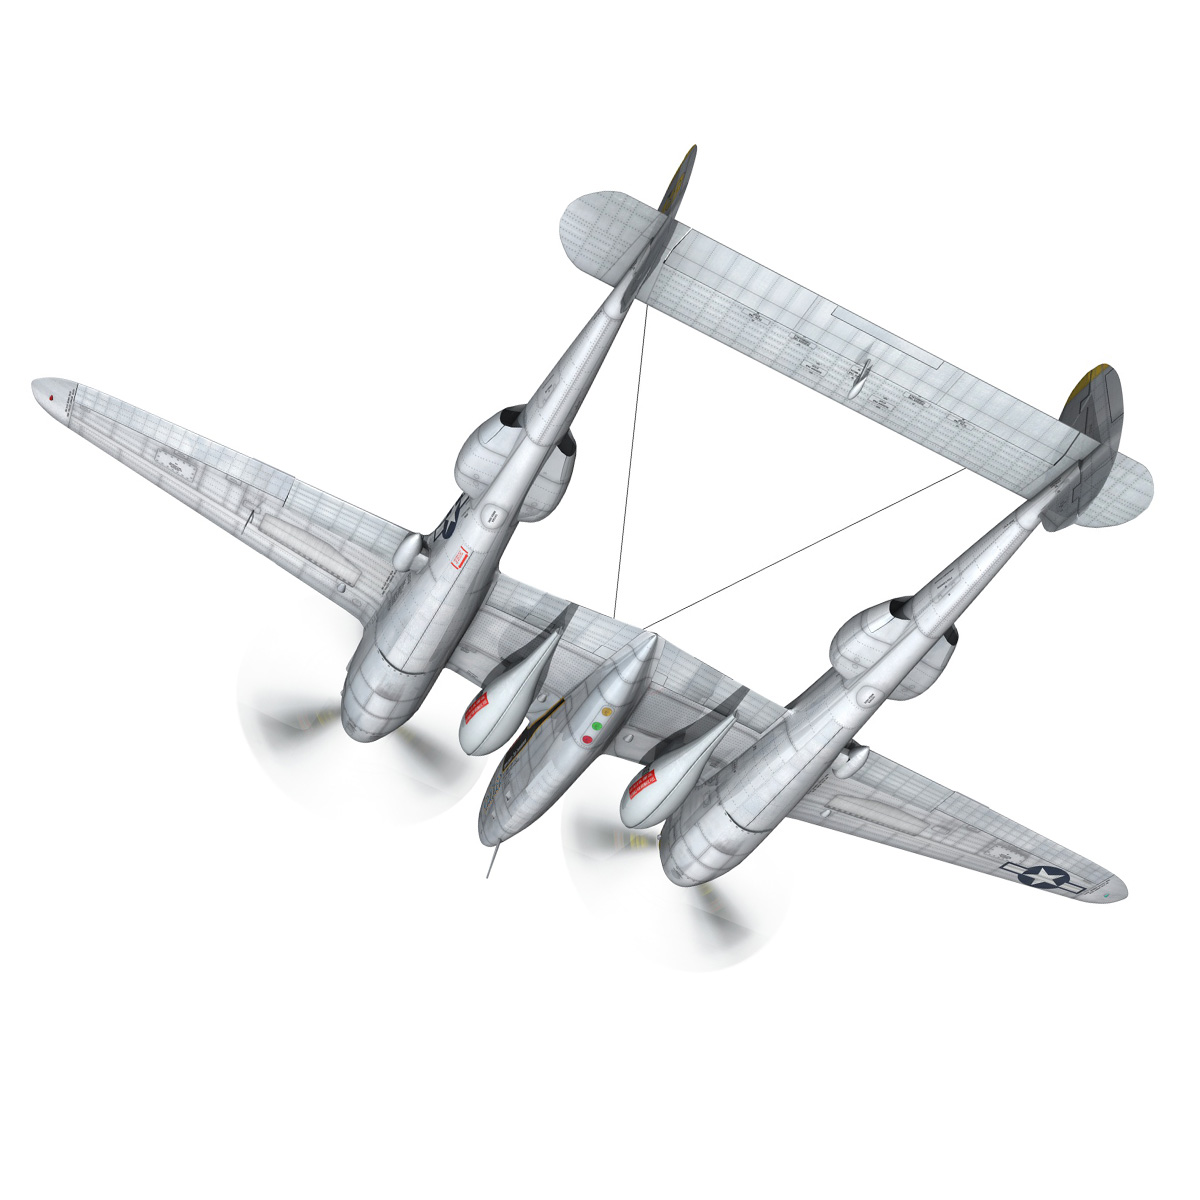 lockheed p-38 lightning – florida cracker 3d model fbx c4d lwo obj 279418